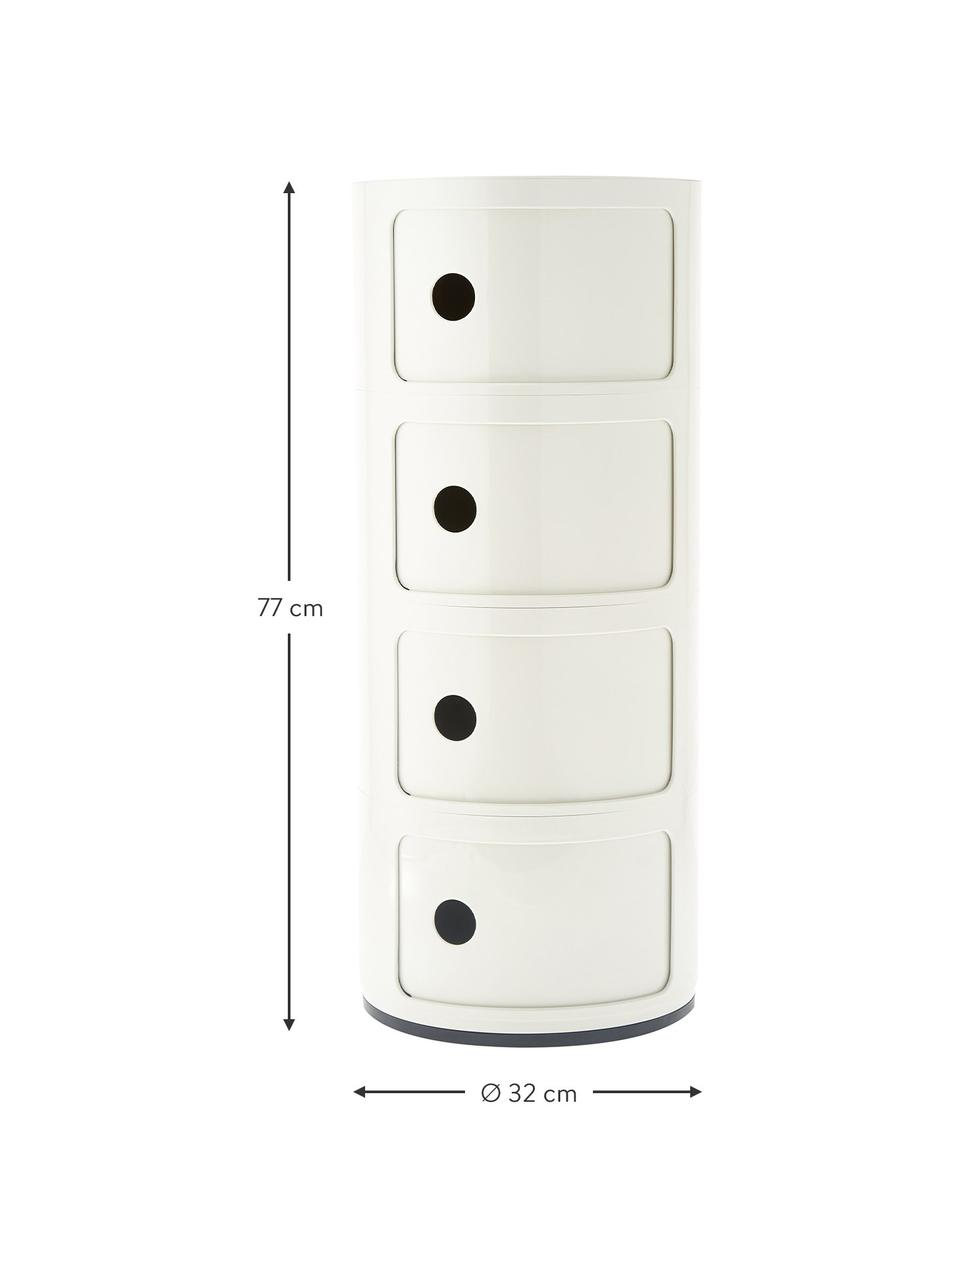 Design Container Componibili 4 Modules, Kunststoff (ABS), lackiert, Weiß, Ø 32 x H 77 cm